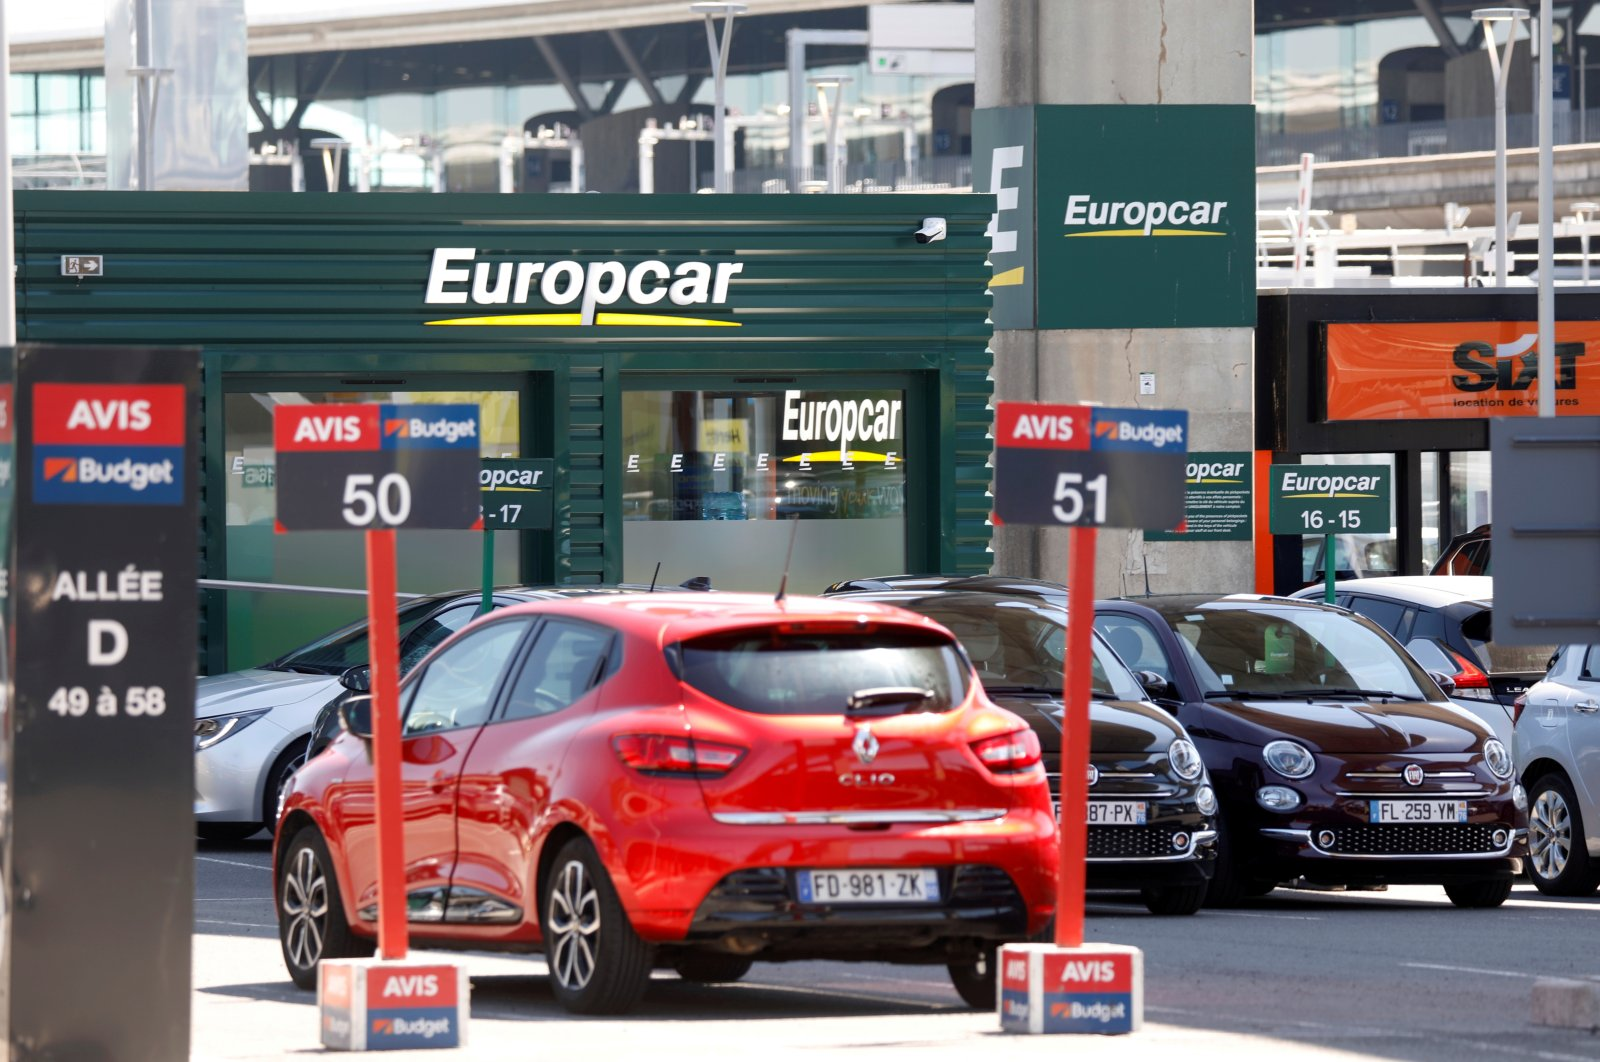 Cars are seen at car rental companies Avis and Europcar outside Paris Charles de Gaulle airport in Roissy-en-France, France, May 19, 2020. (Reuters Photo)